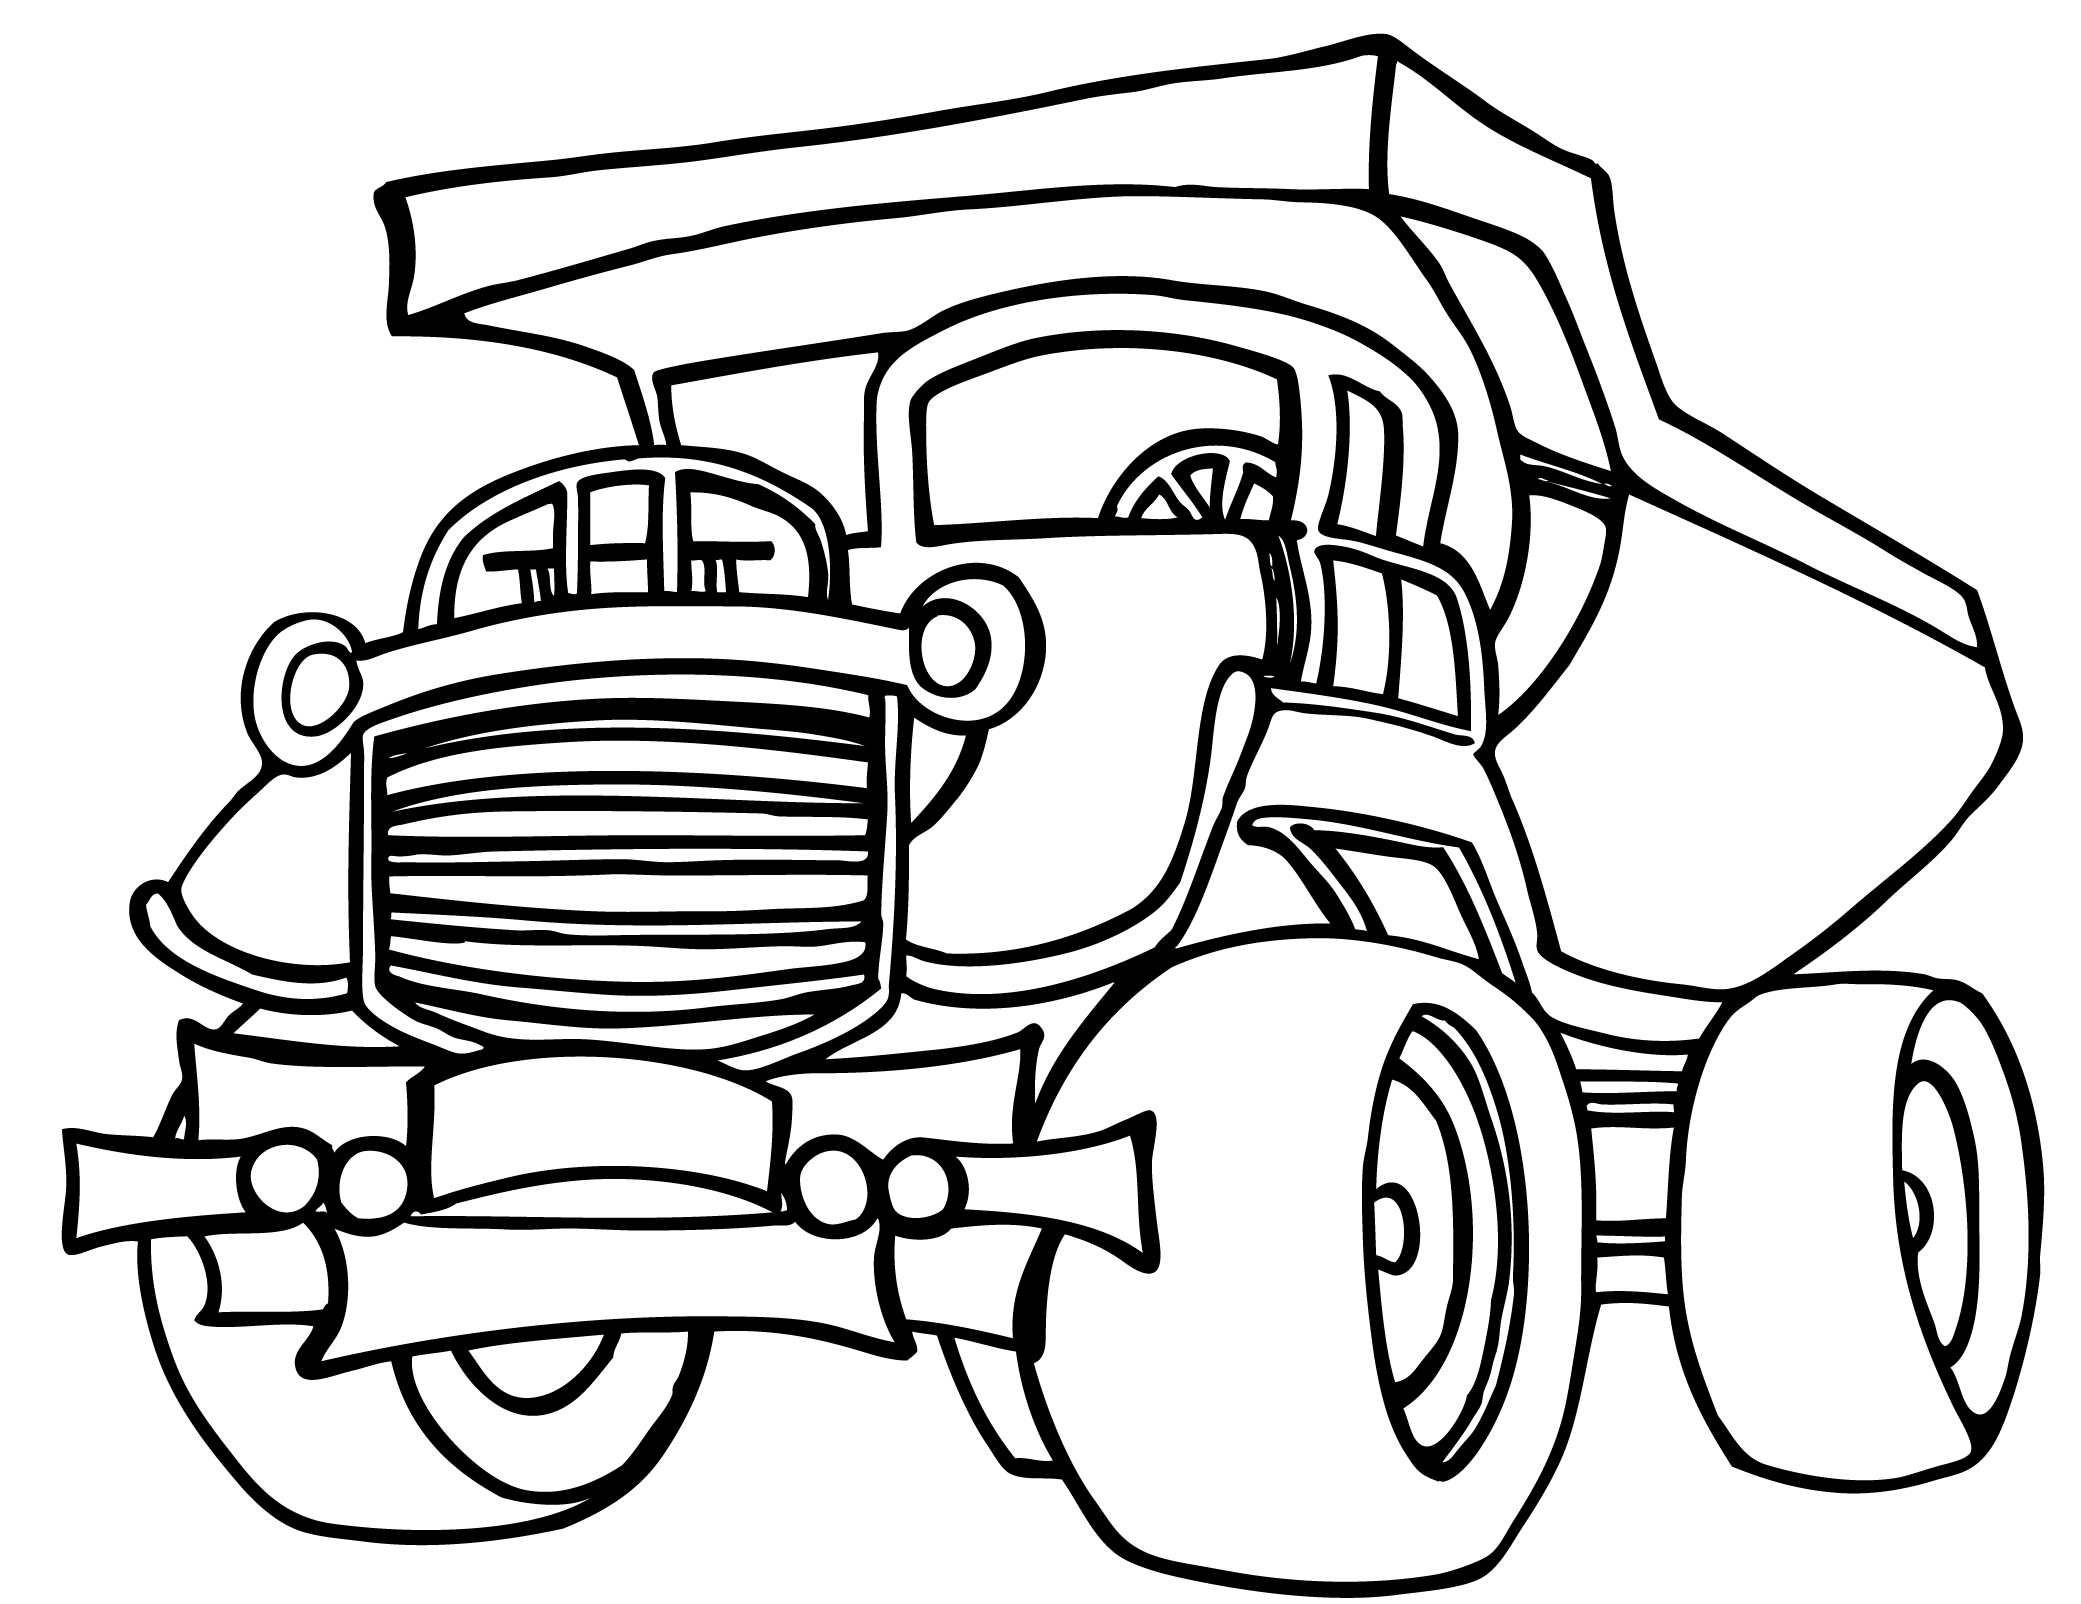 construction pictures to color construction coloring pages coloring pages to download construction to pictures color